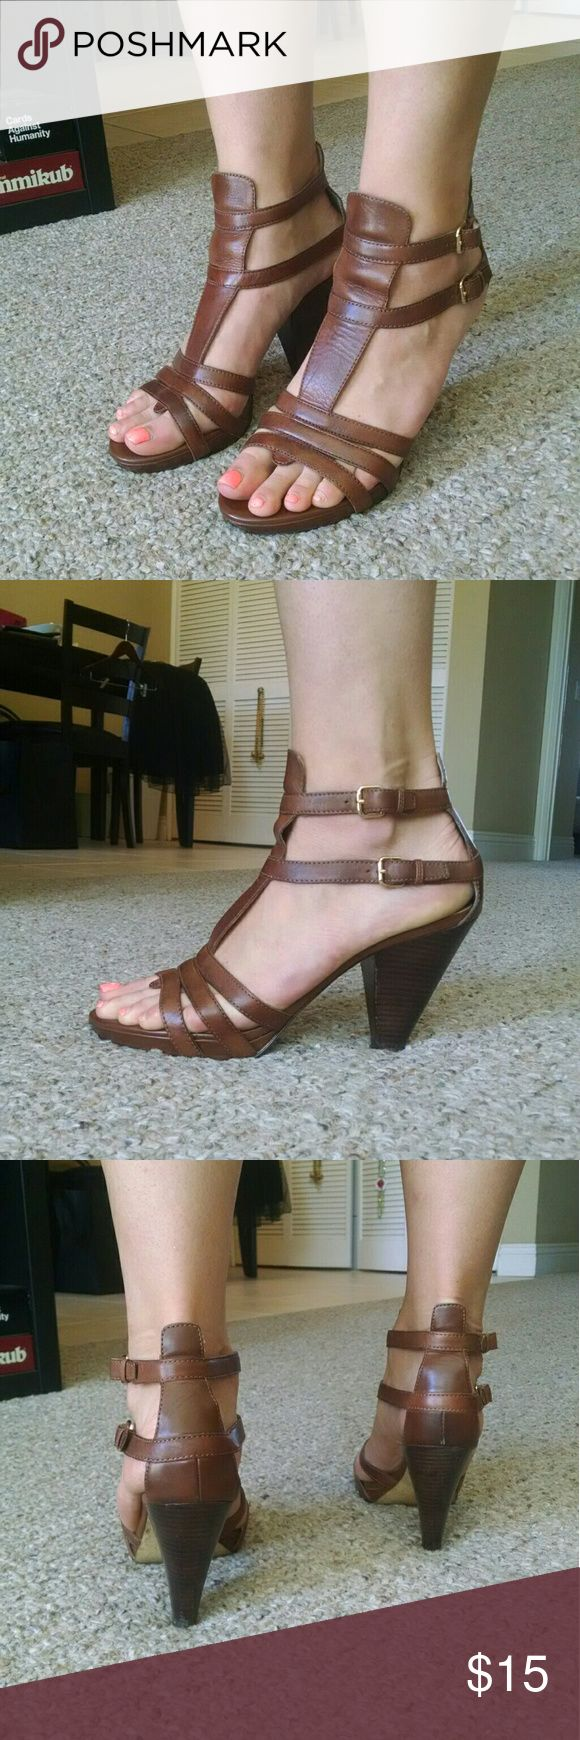 Size 9.5 Brown Strappy Heels - 3in Well worn, but still have life in them! Damage to front of shoes on the underneath Franco Sarto Shoes Heels